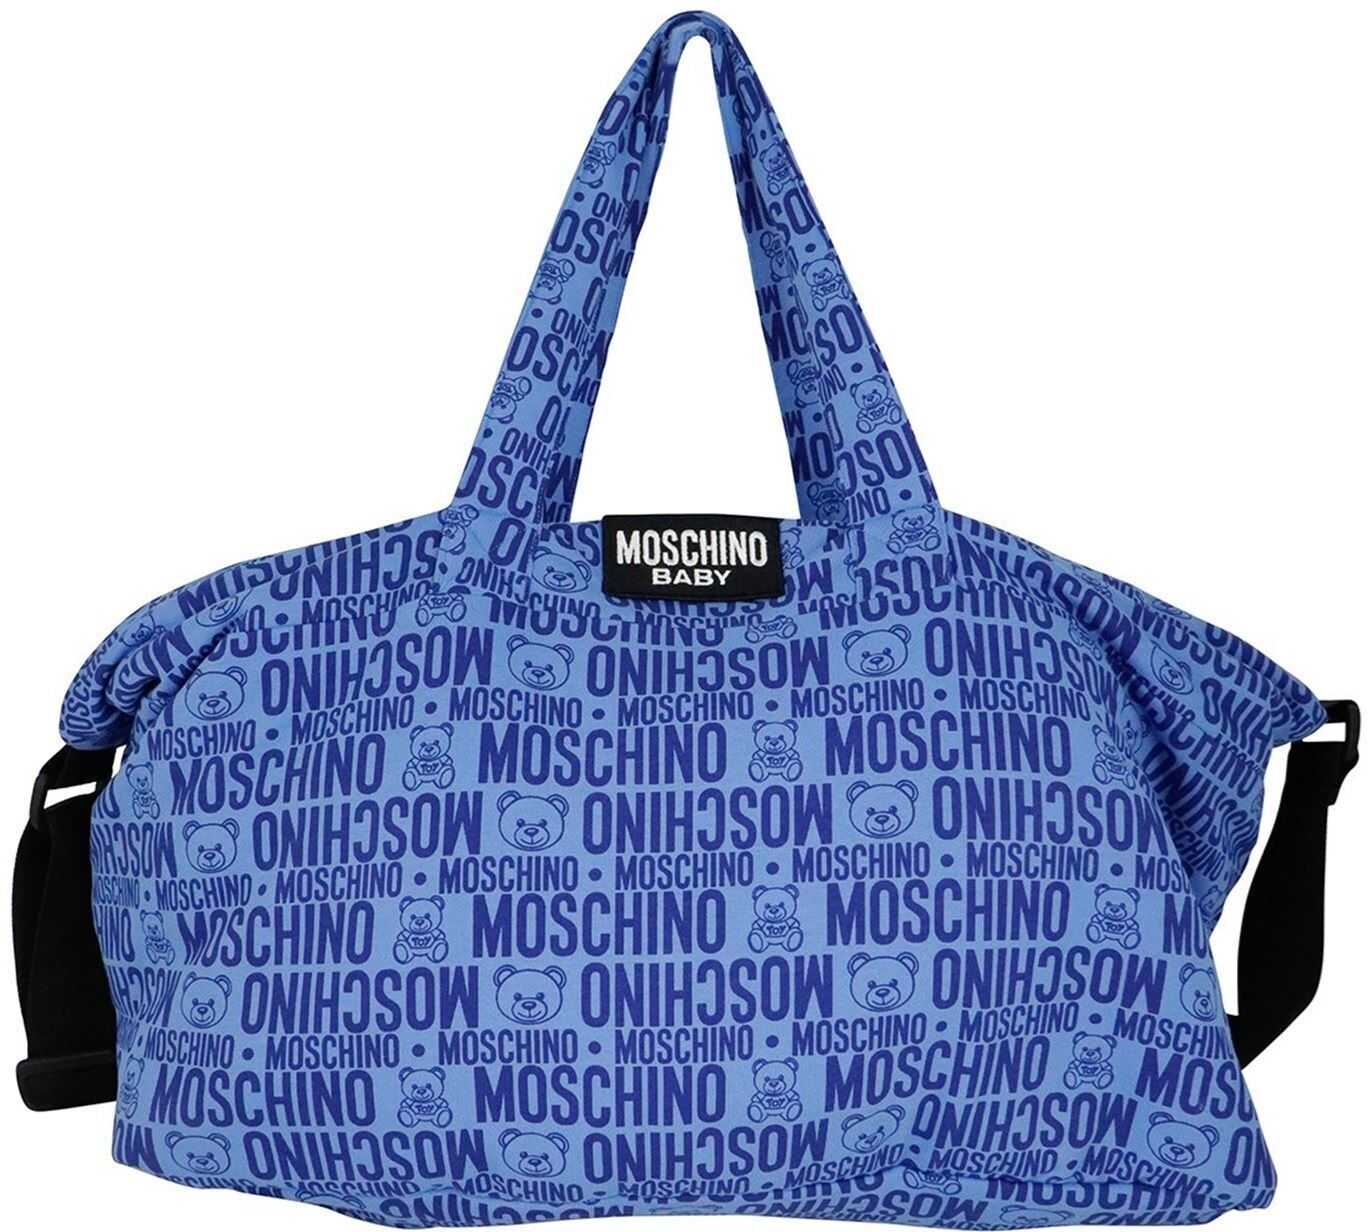 Moschino Logoed Changing Back In Blue MMX03ALDB4985556 Blue imagine b-mall.ro